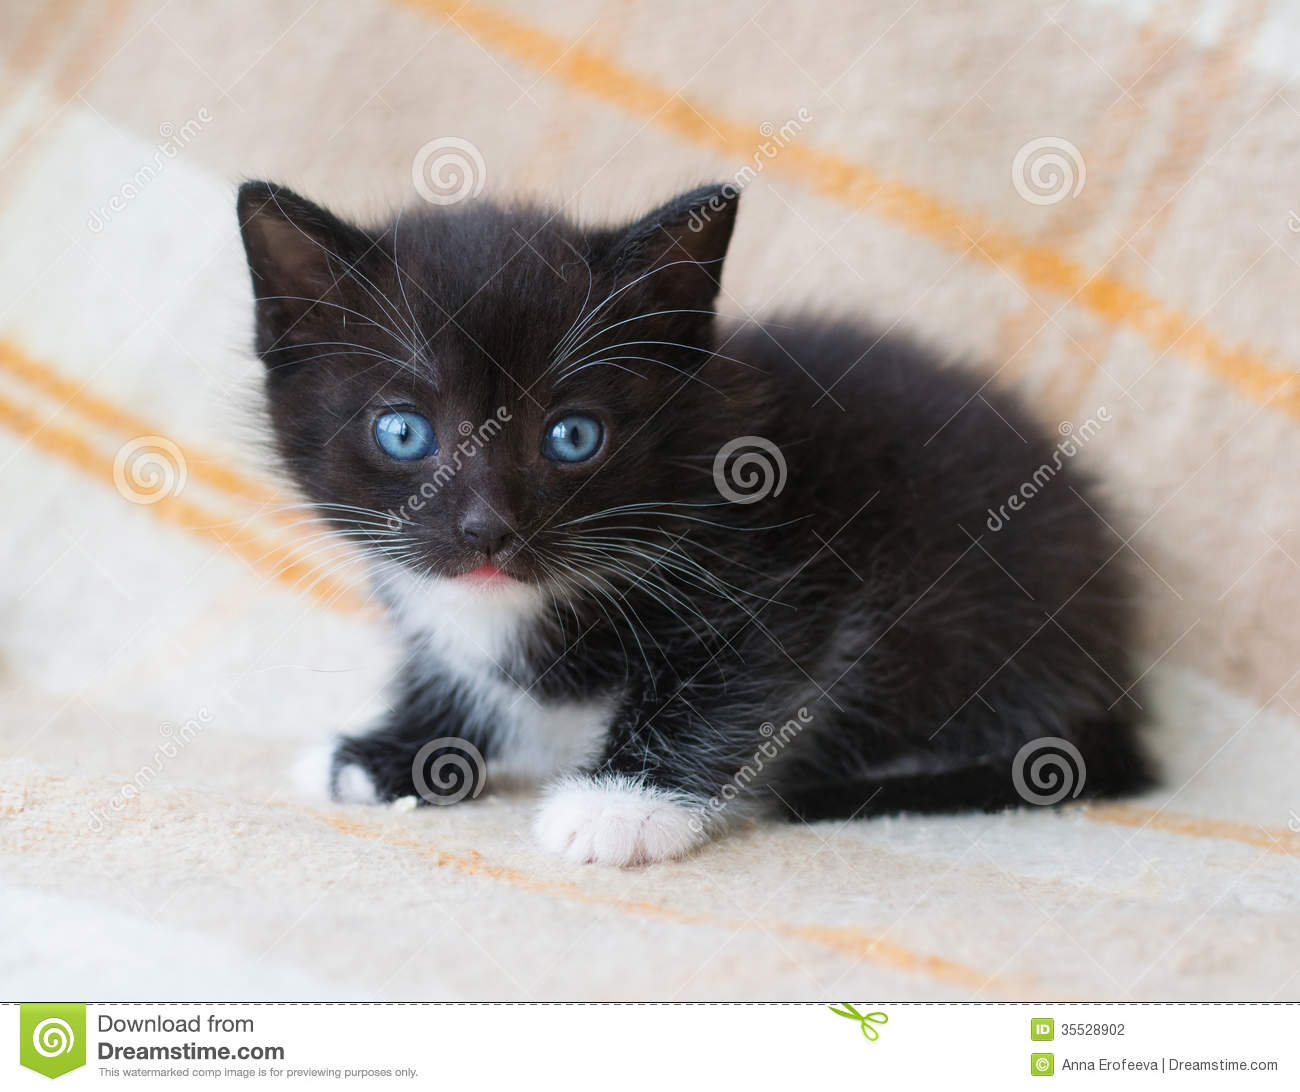 Fluffy Black Kittens With Blue Eyes Small Black Fluffy Kit...